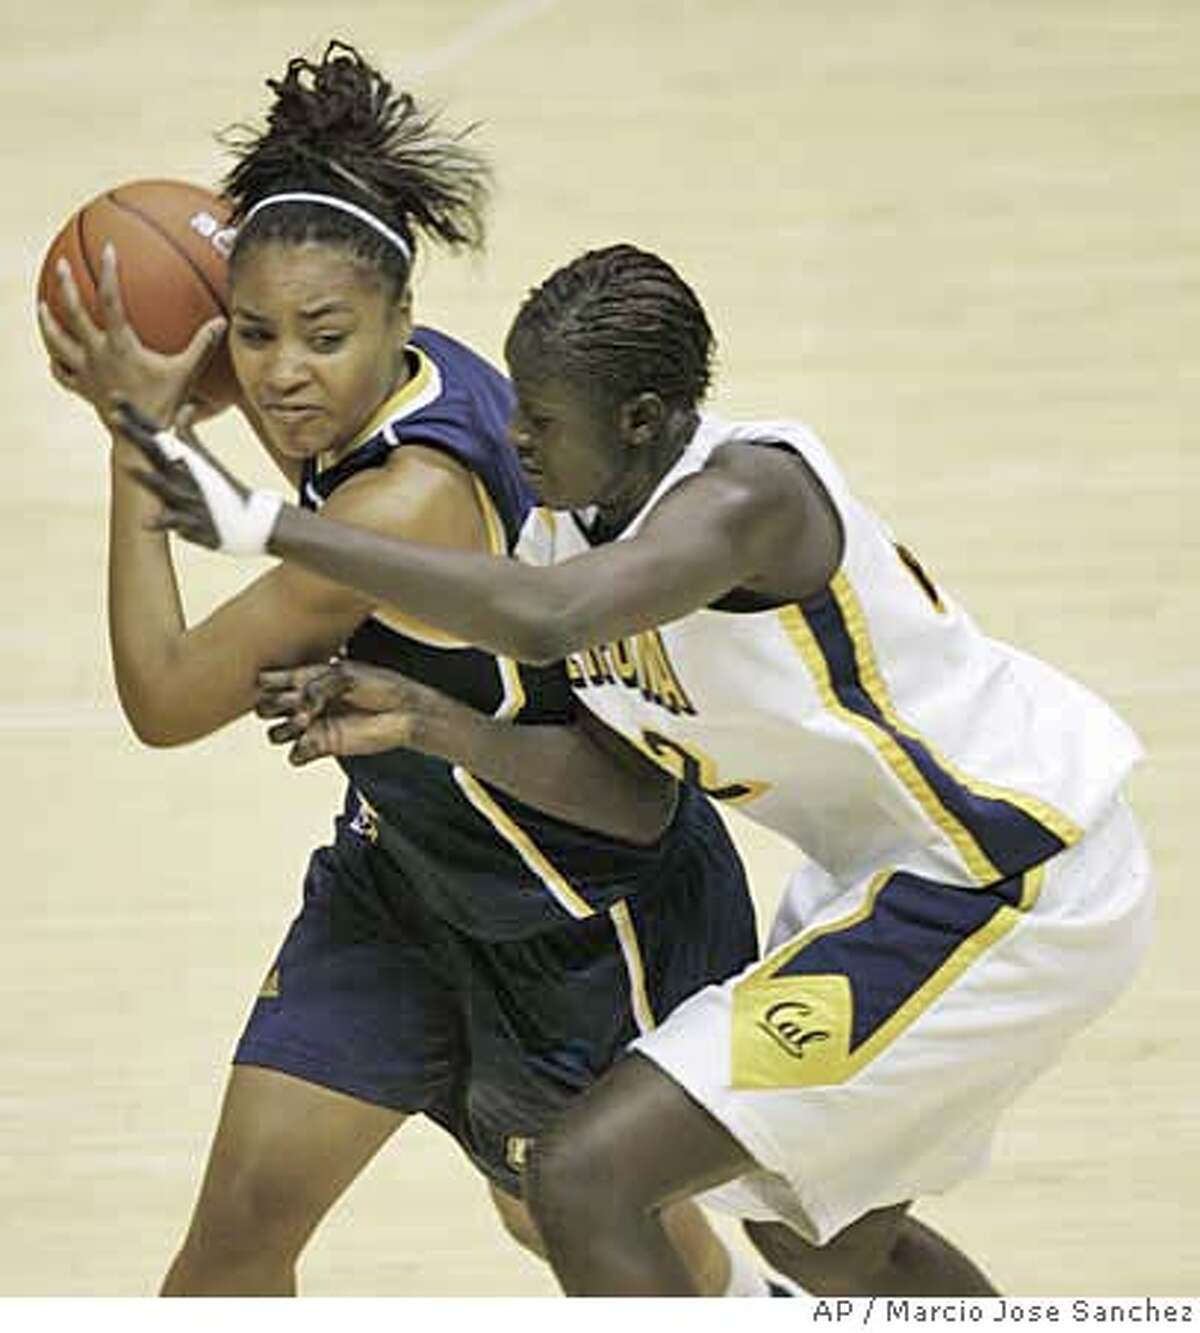 UC Riverside's Brittany Waddell, left, is defended by California's Rama N'Diaye in the second half of a basketball game in Berkeley, Calif., Wednesday, Jan. 31, 2007. California won 58-51. (AP Photo/Marcio Jose Sanchez)